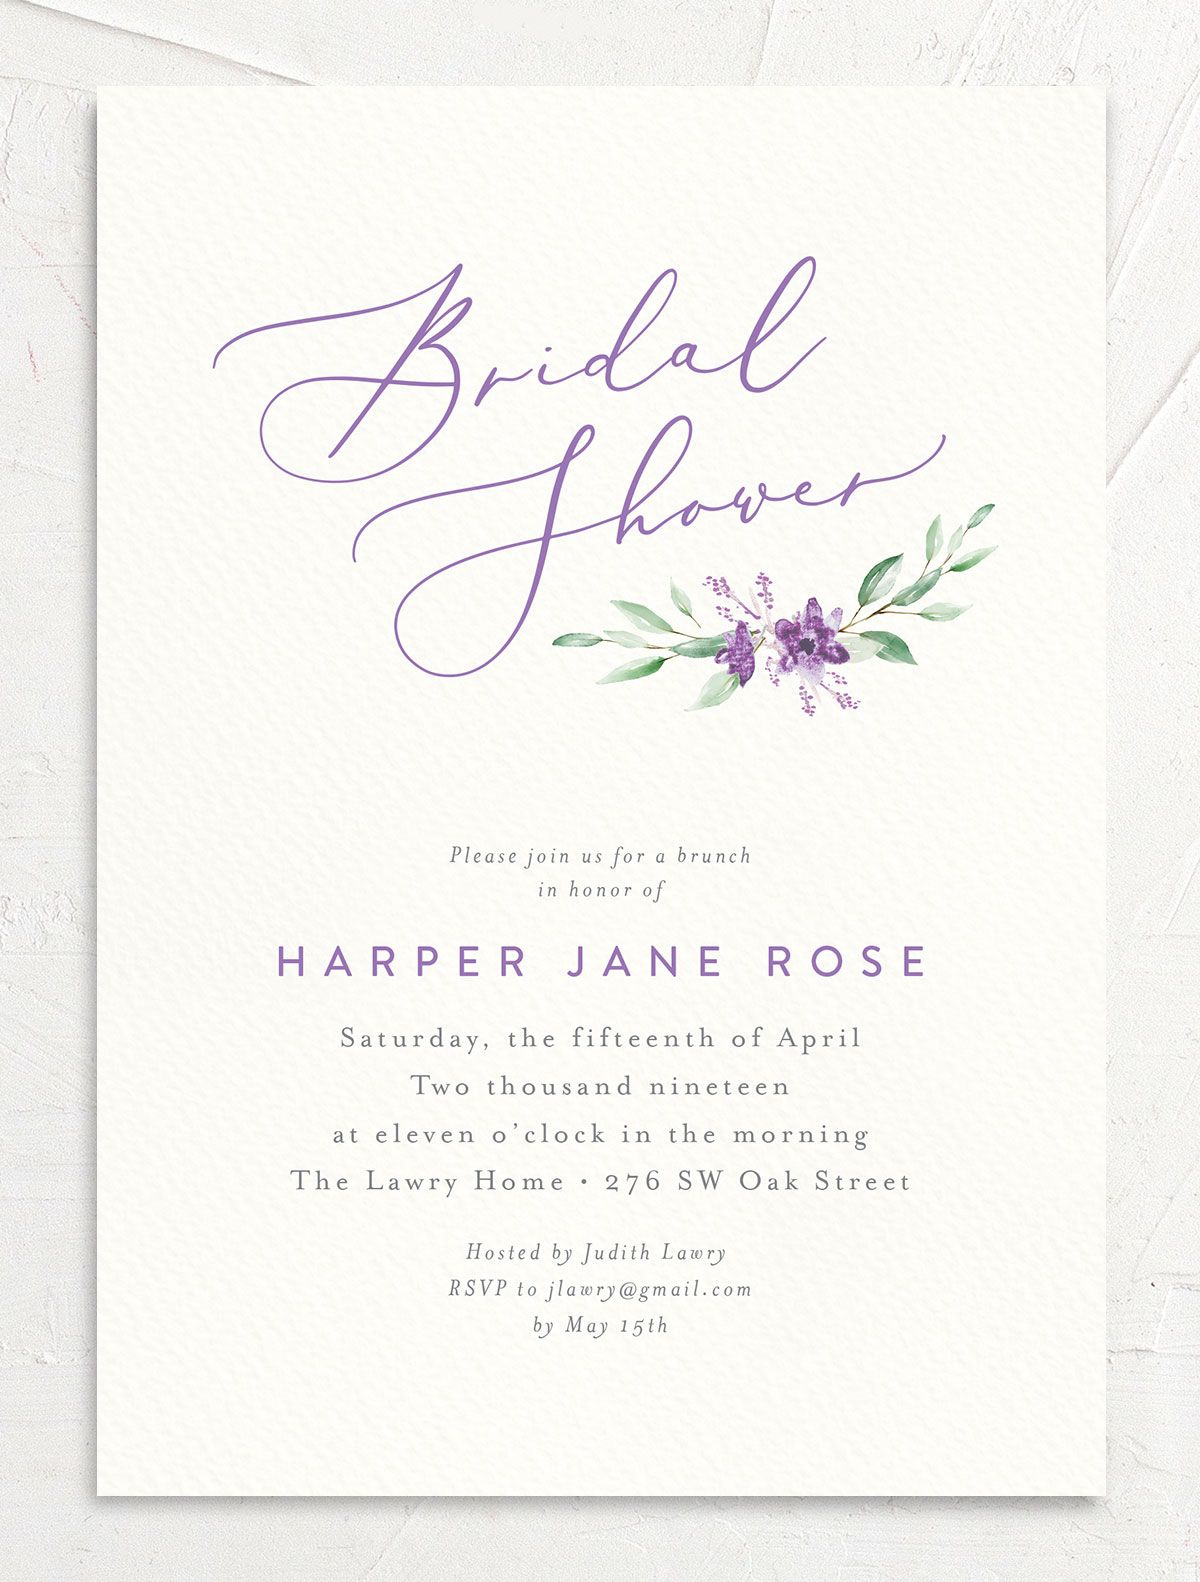 watercolor crest bridal shower invitations in purple